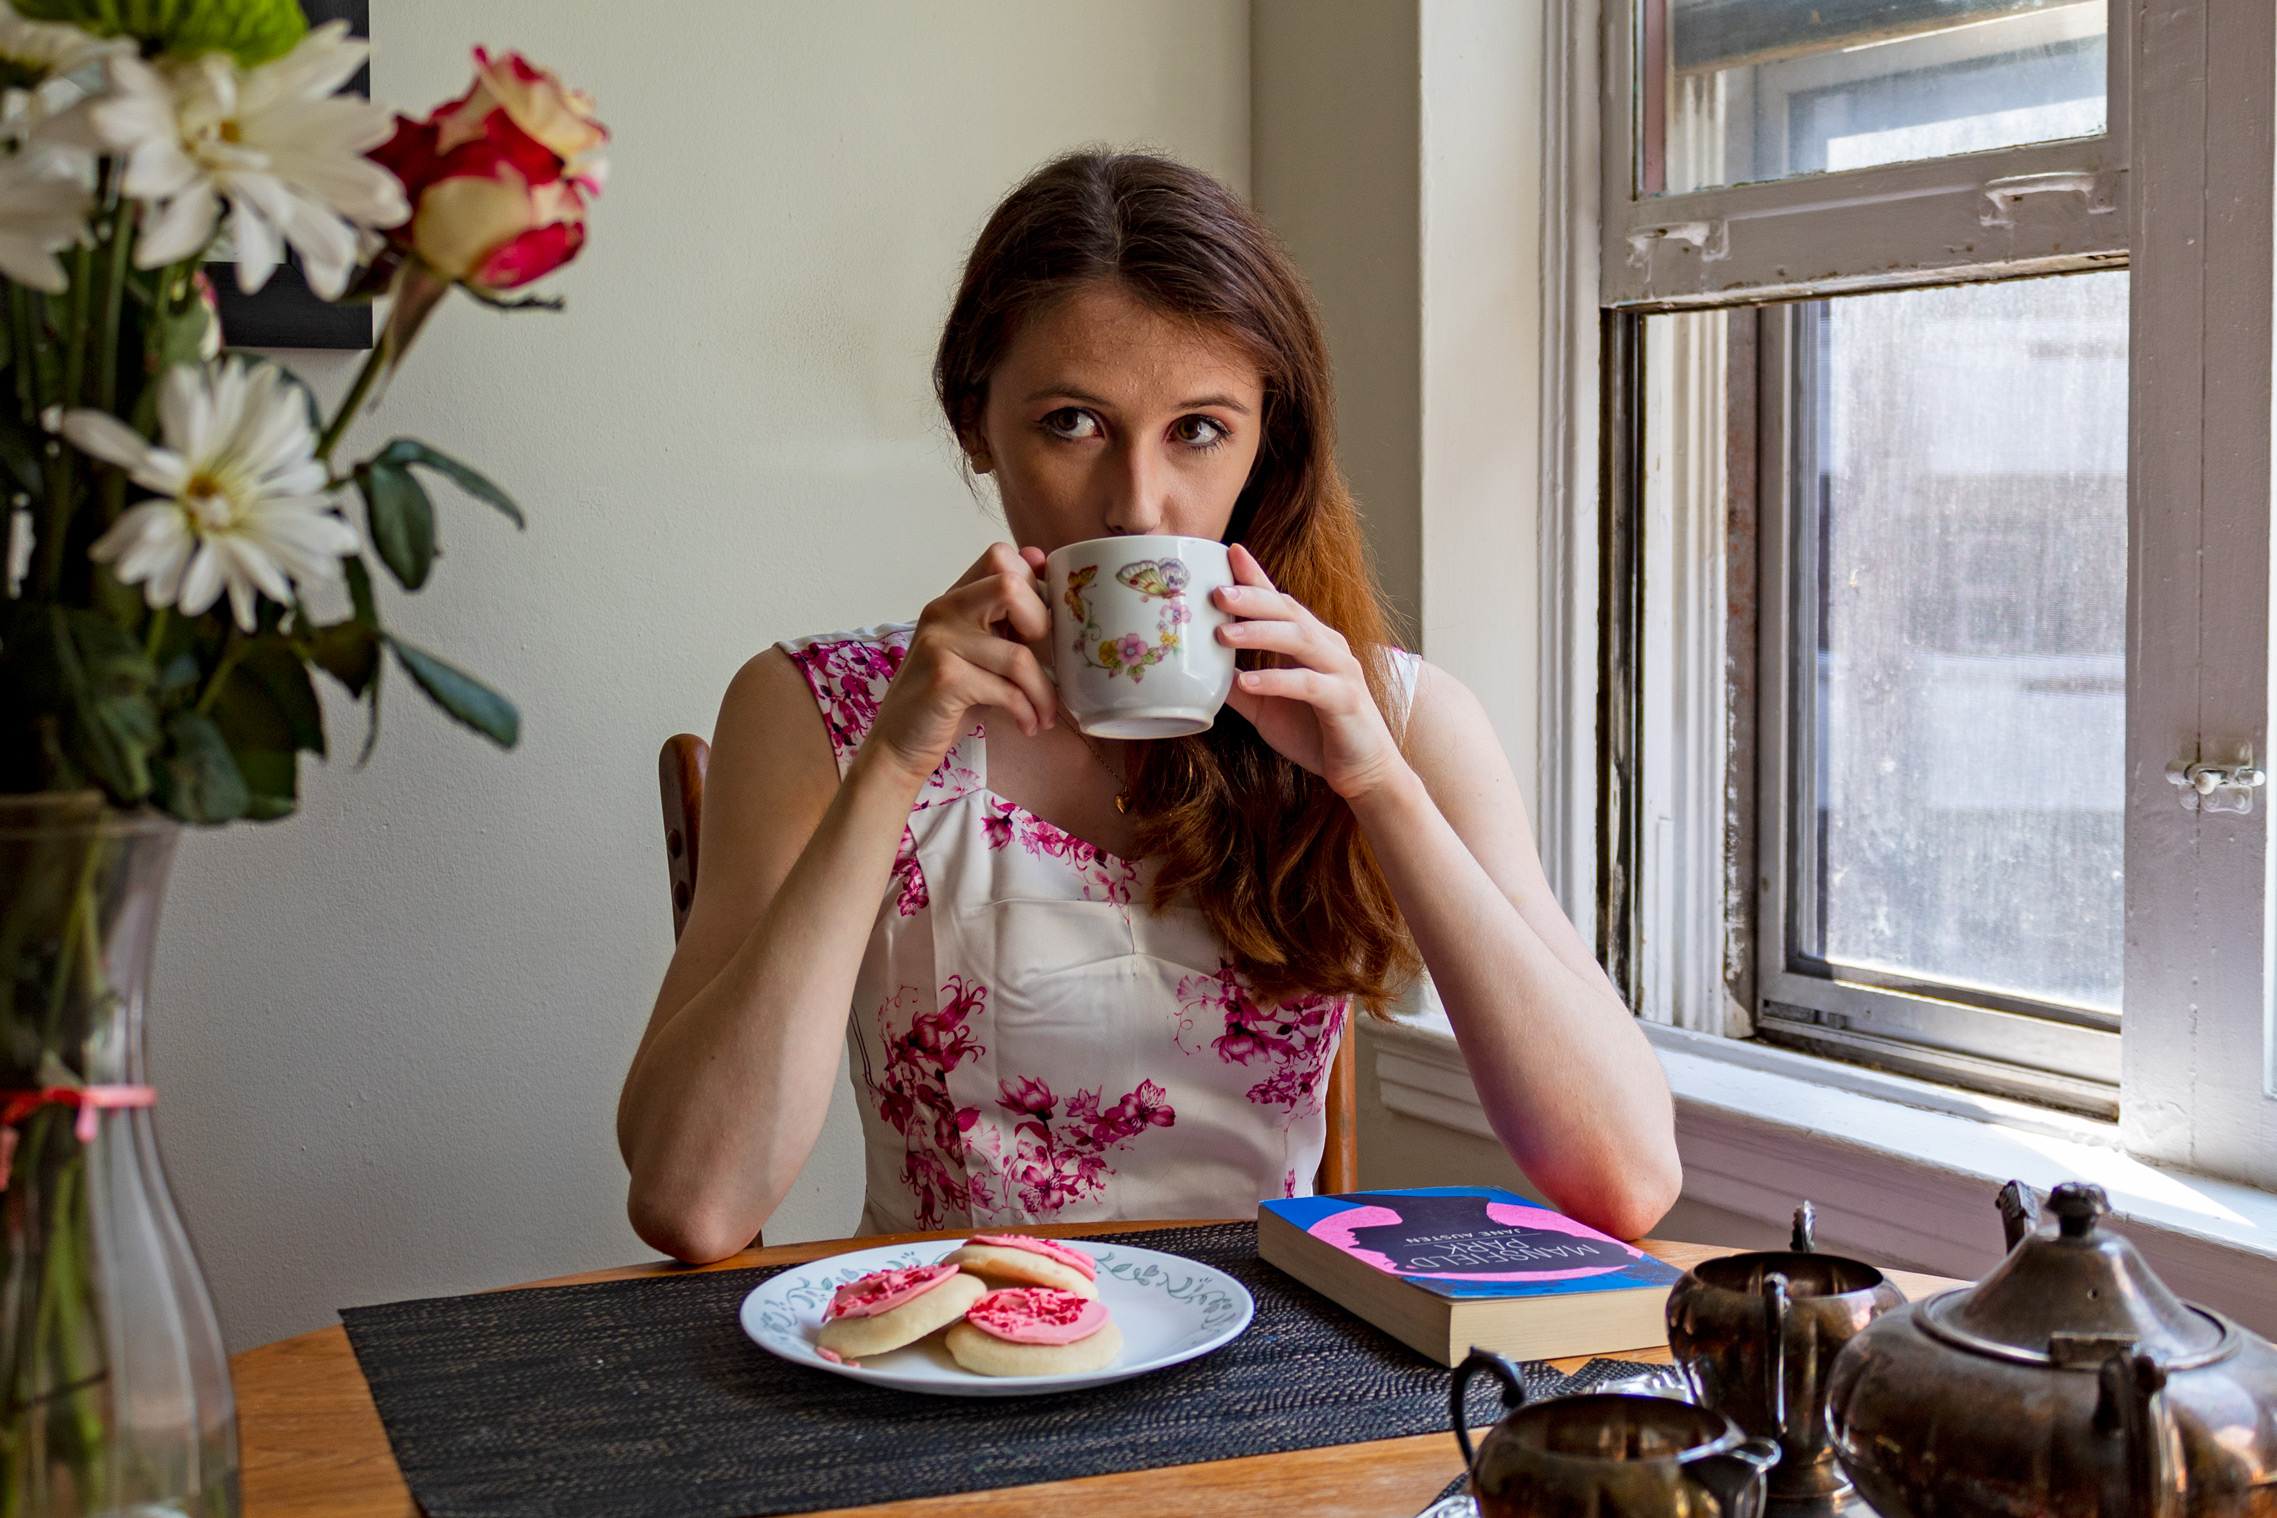 Woman sipping on a cup of tea; in front of her are cookies and a book